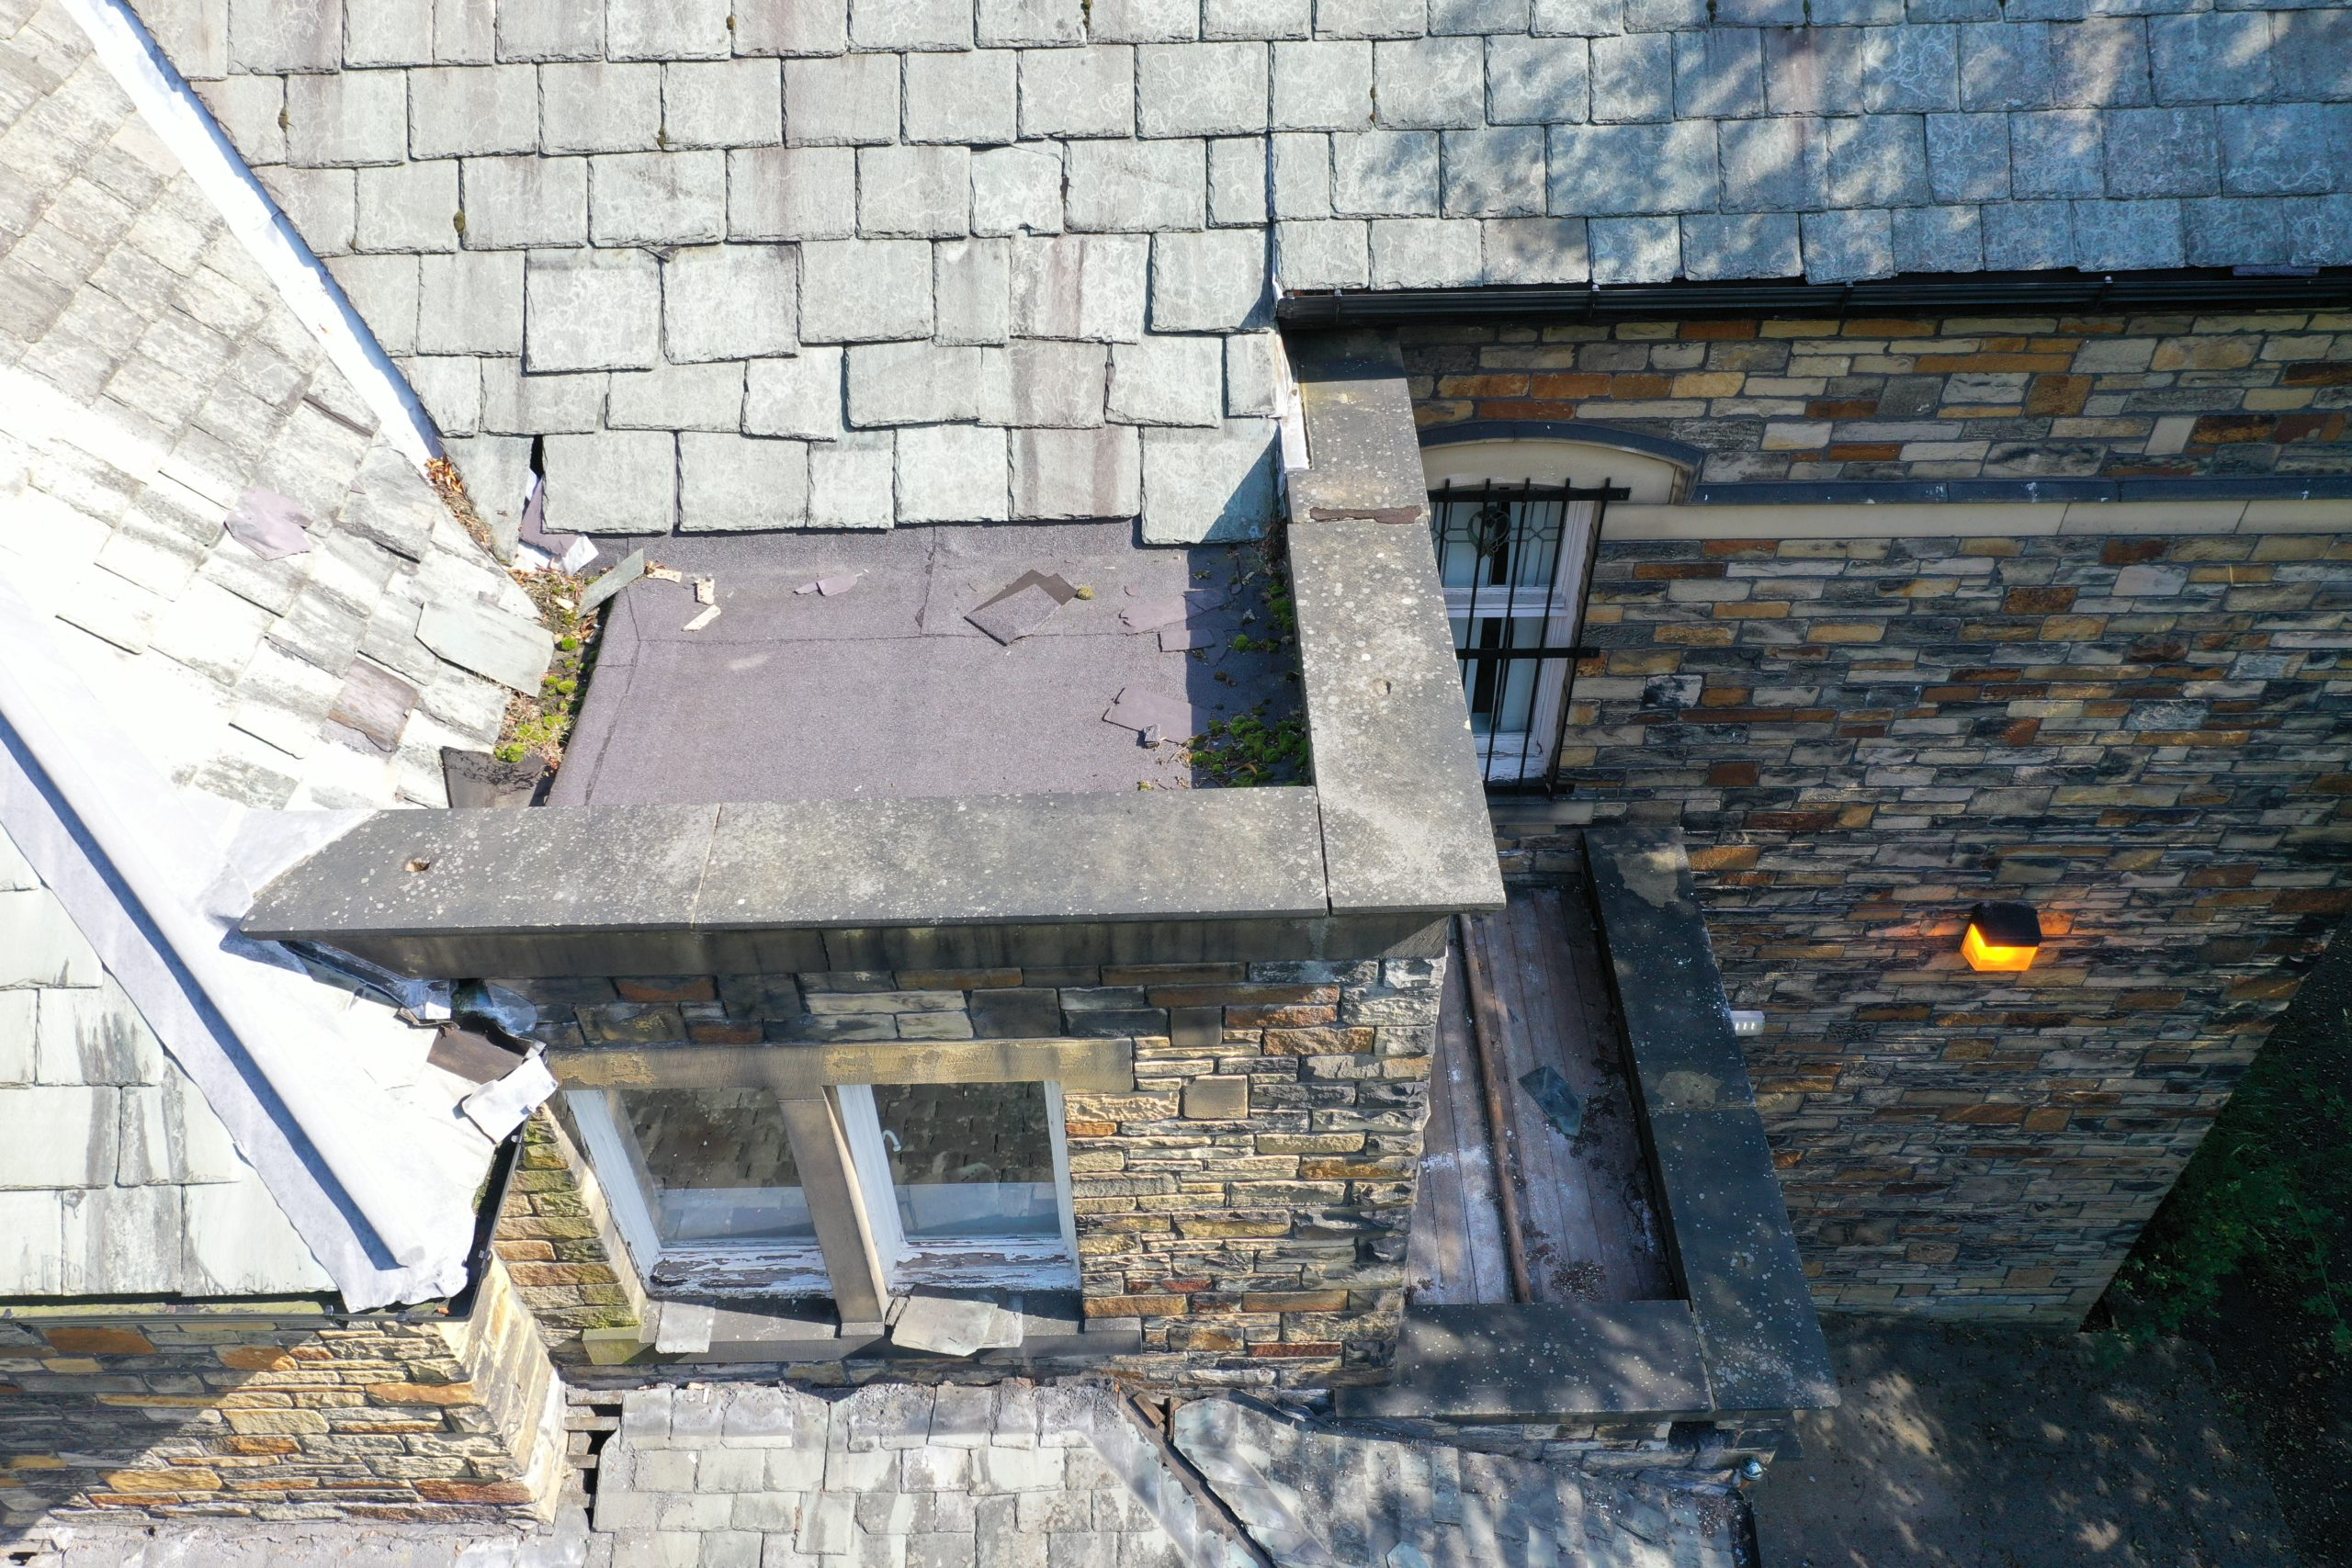 Drone - Roof / Roofing Inspection - Dilapidation - Gutter / Guttering - Chimney Stack - Broken Tiles / Slates